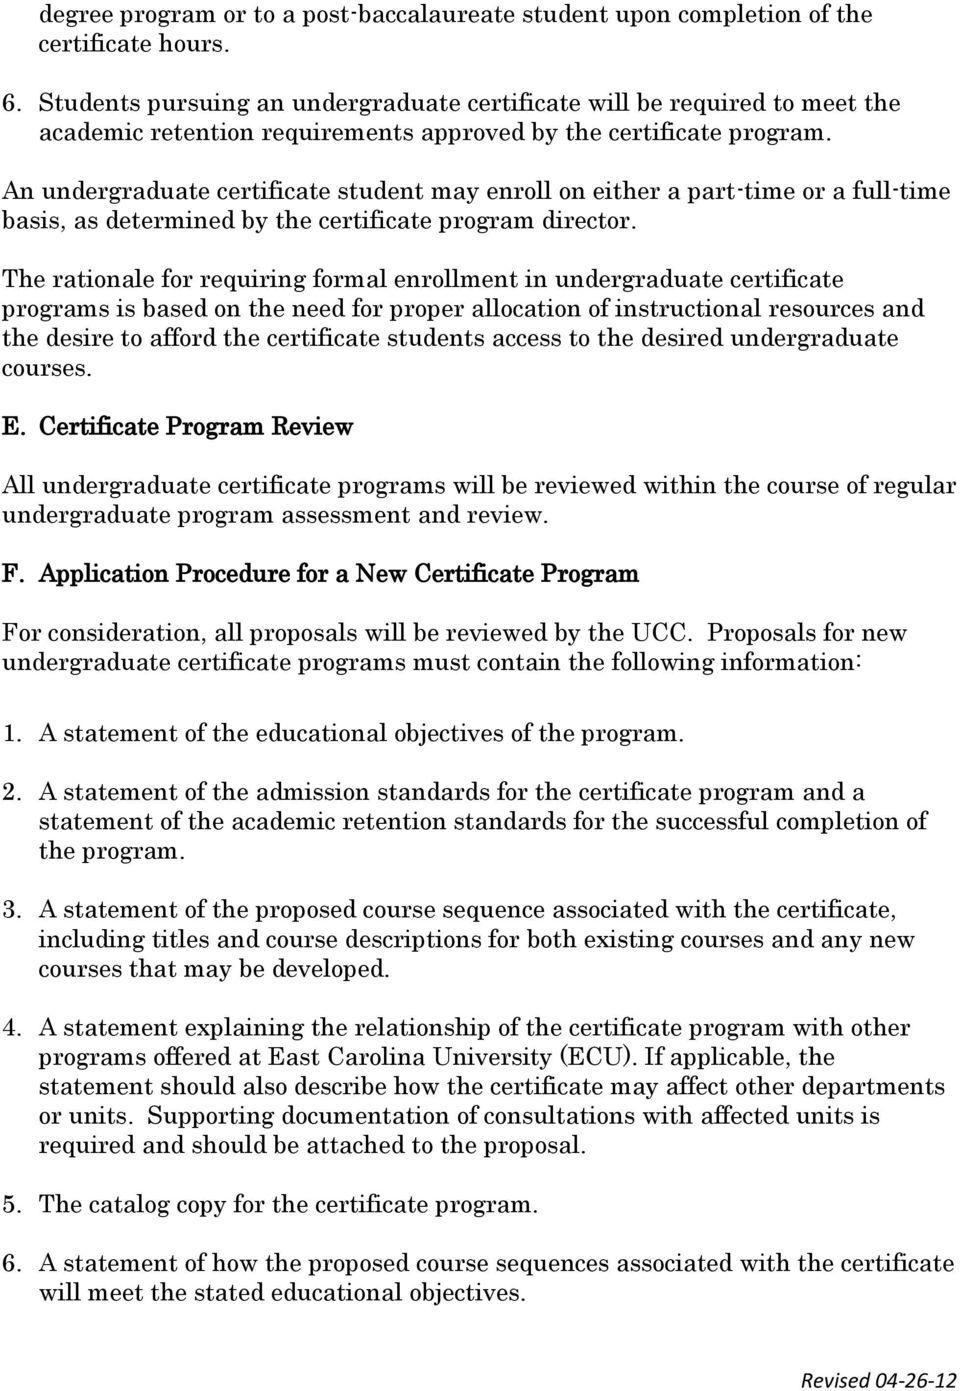 An undergraduate certificate student may enroll on either a part-time or a full-time basis, as determined by the certificate program director.